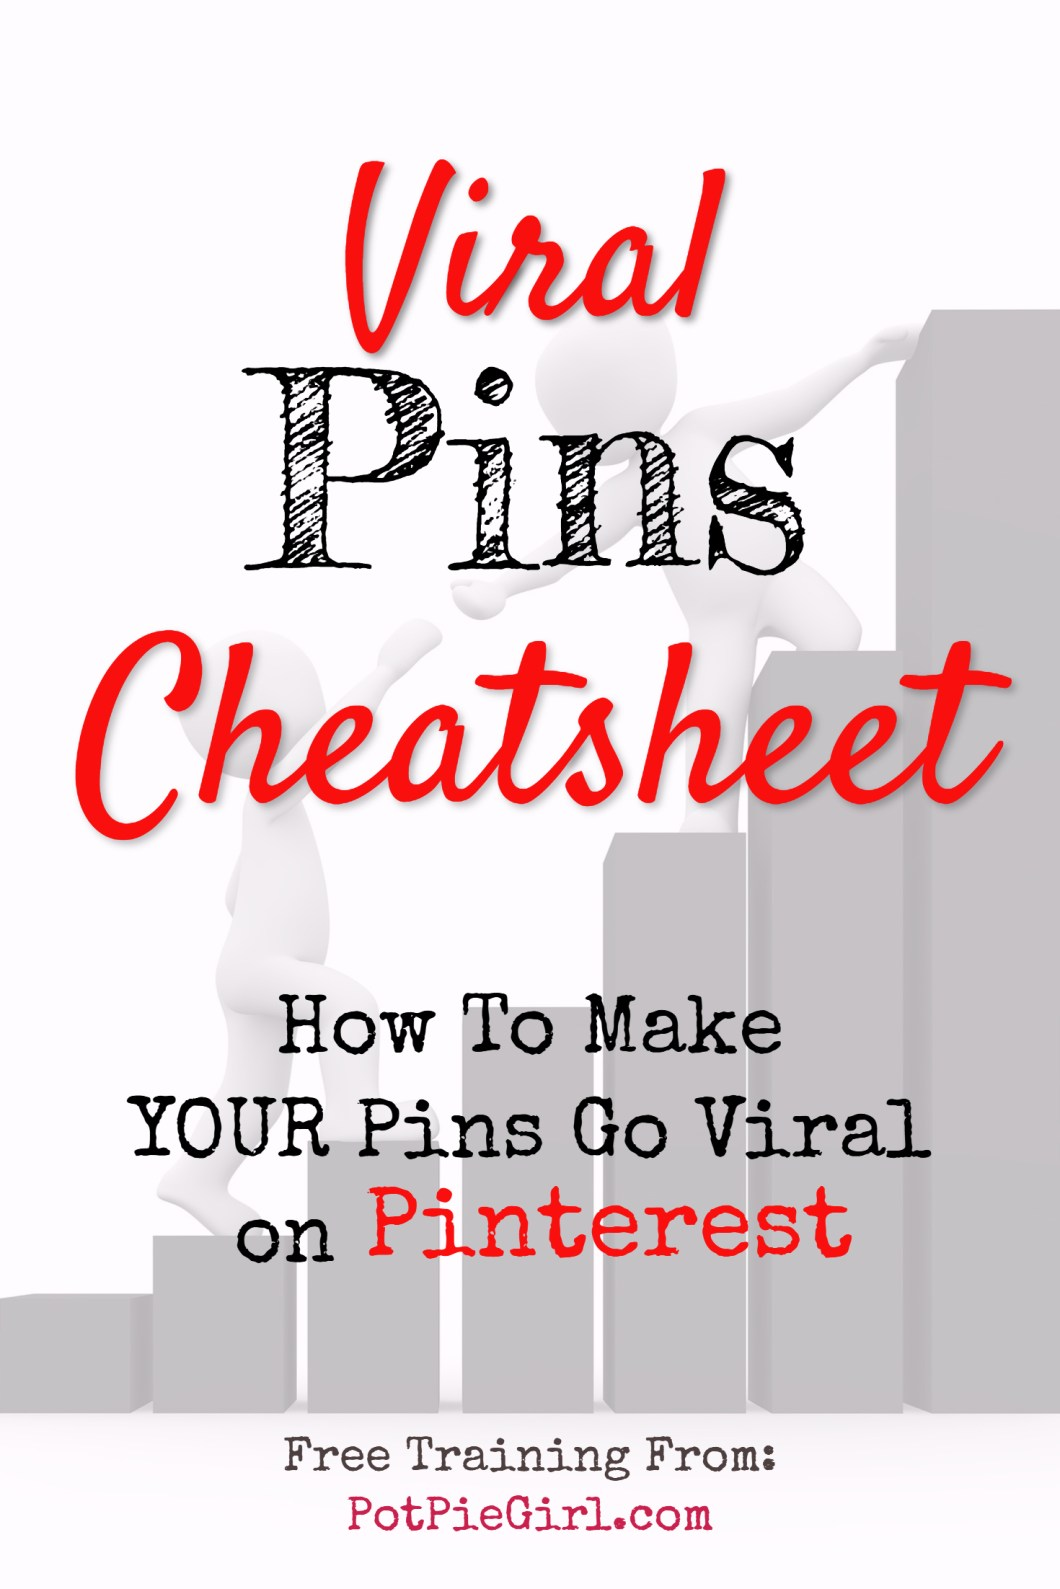 How to make YOUR Pins go VIRAL on Pinterest - free Cheatsheet from @PotPieGirl